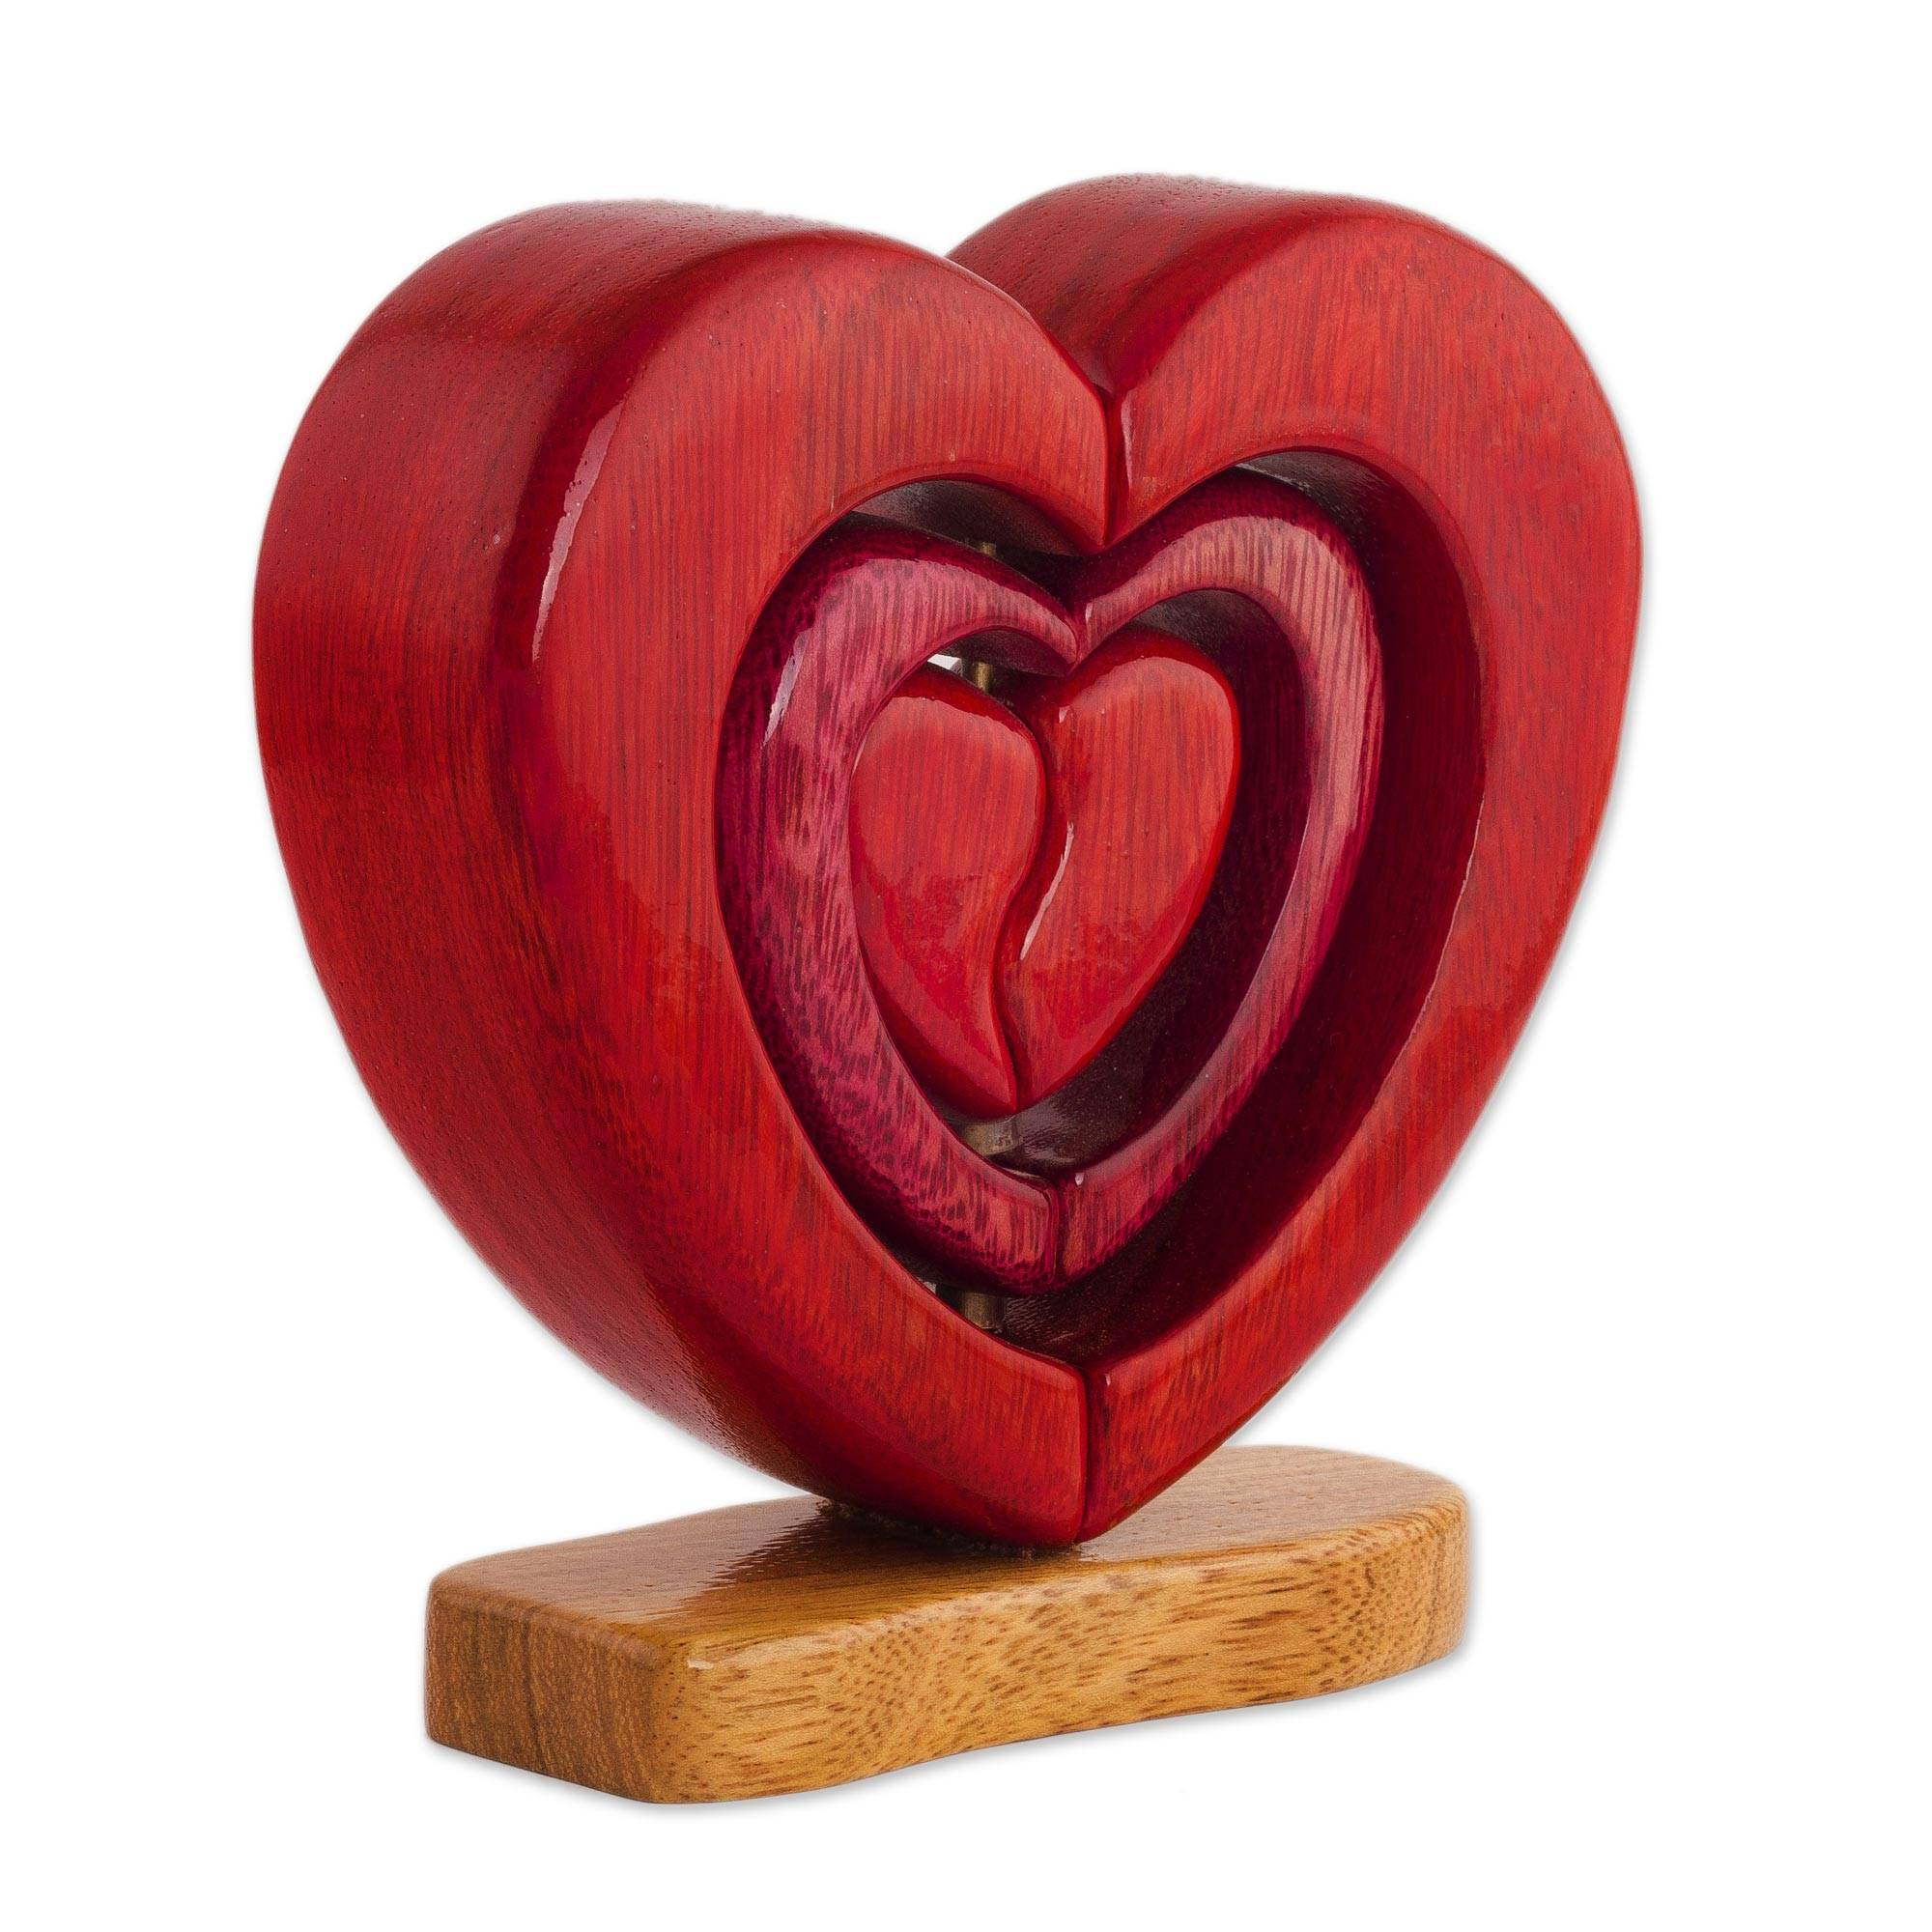 Unicef Market Handcrafted Wood Heart Sculpture Nested Hearts